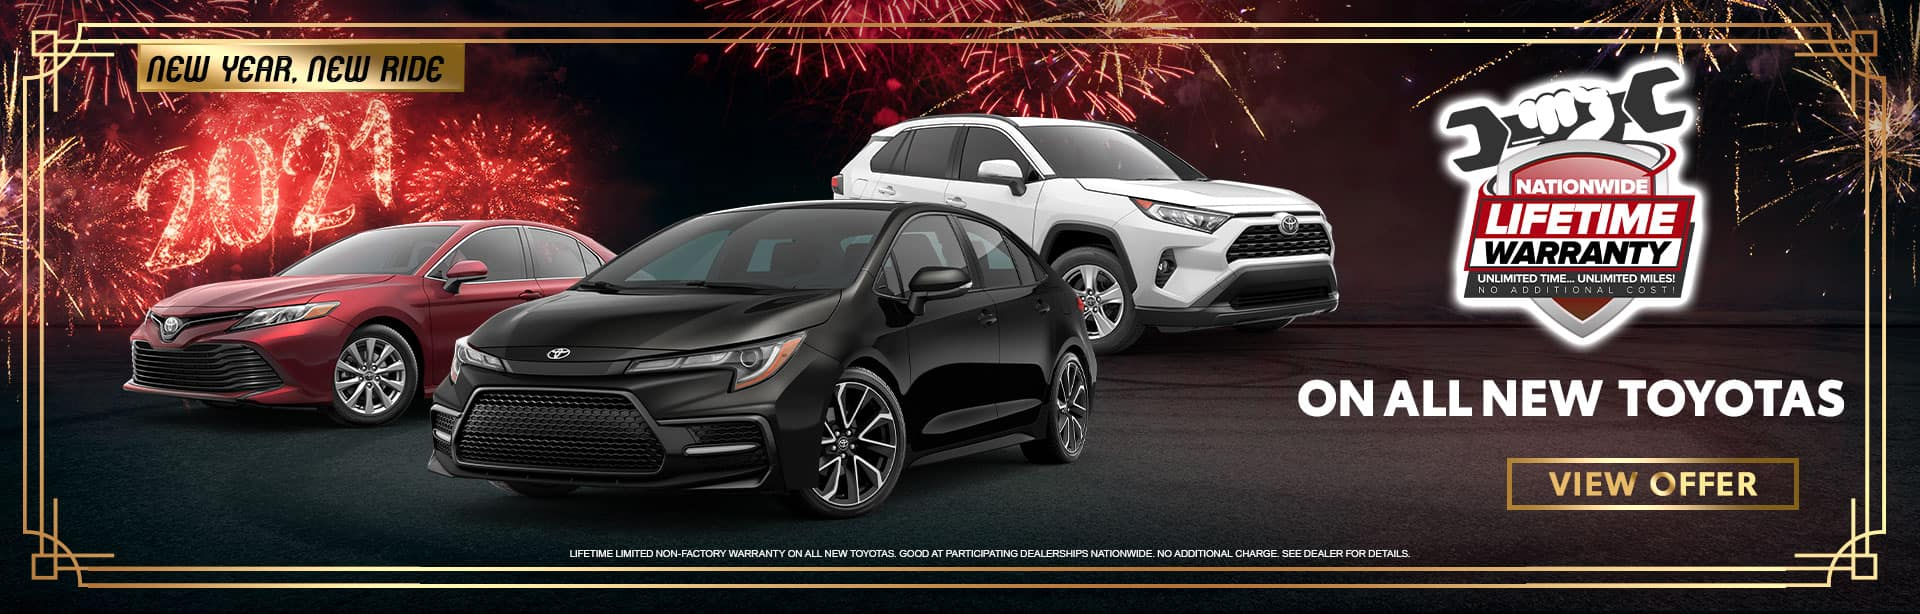 Nationwide Lifetime Warranty on All New Toyotas